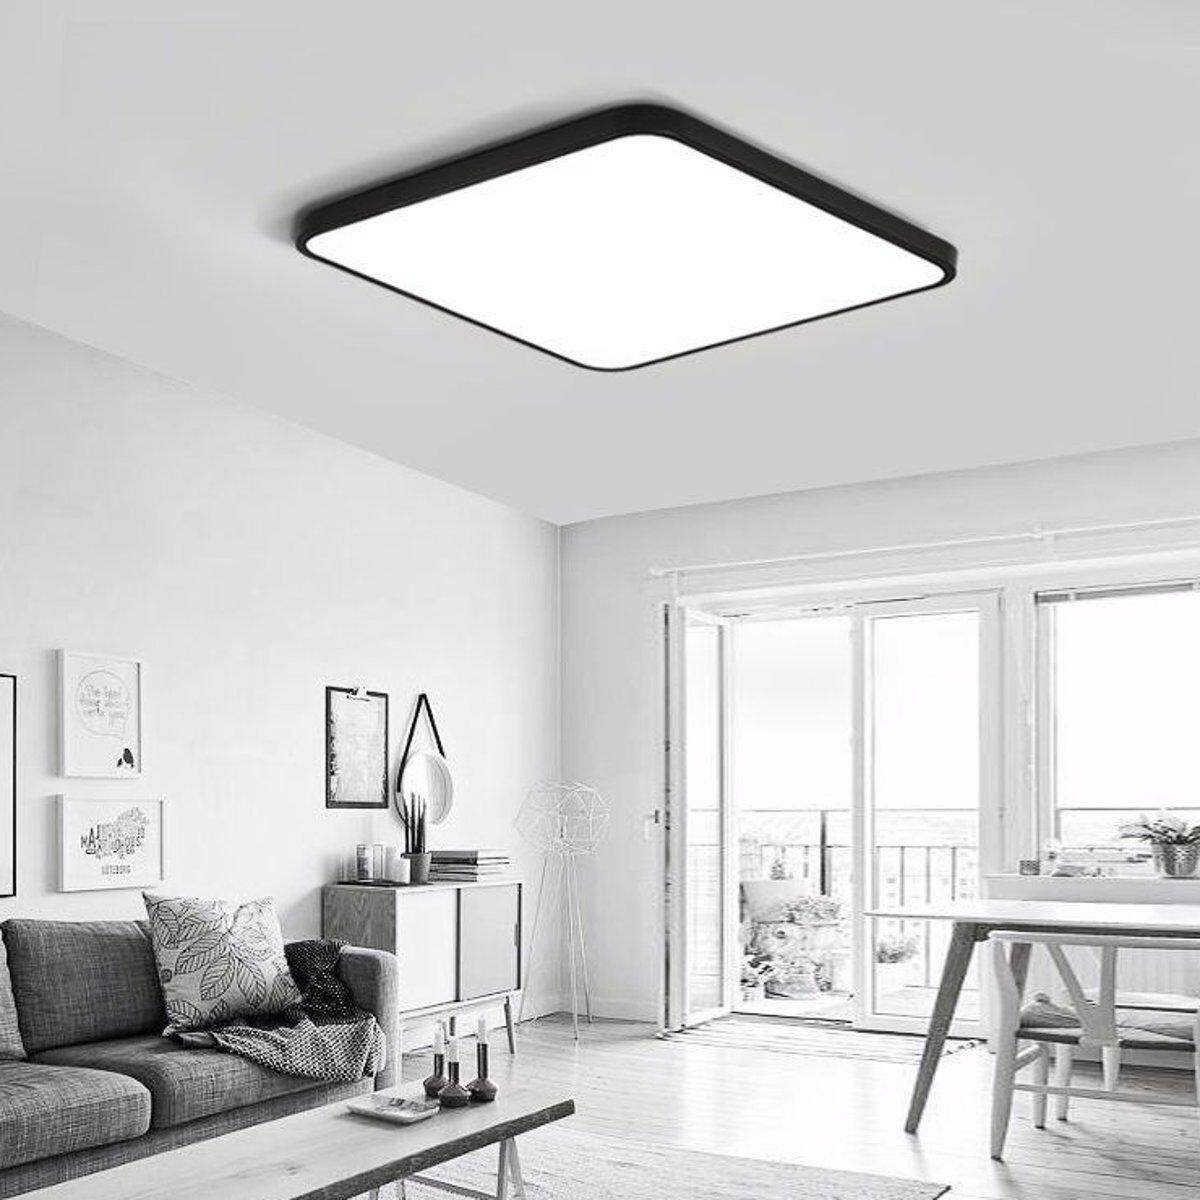 Bright 24W Square LED Ceiling Down Light Panel Wall Kitchen Bathroom Lamp # Black white light - intl